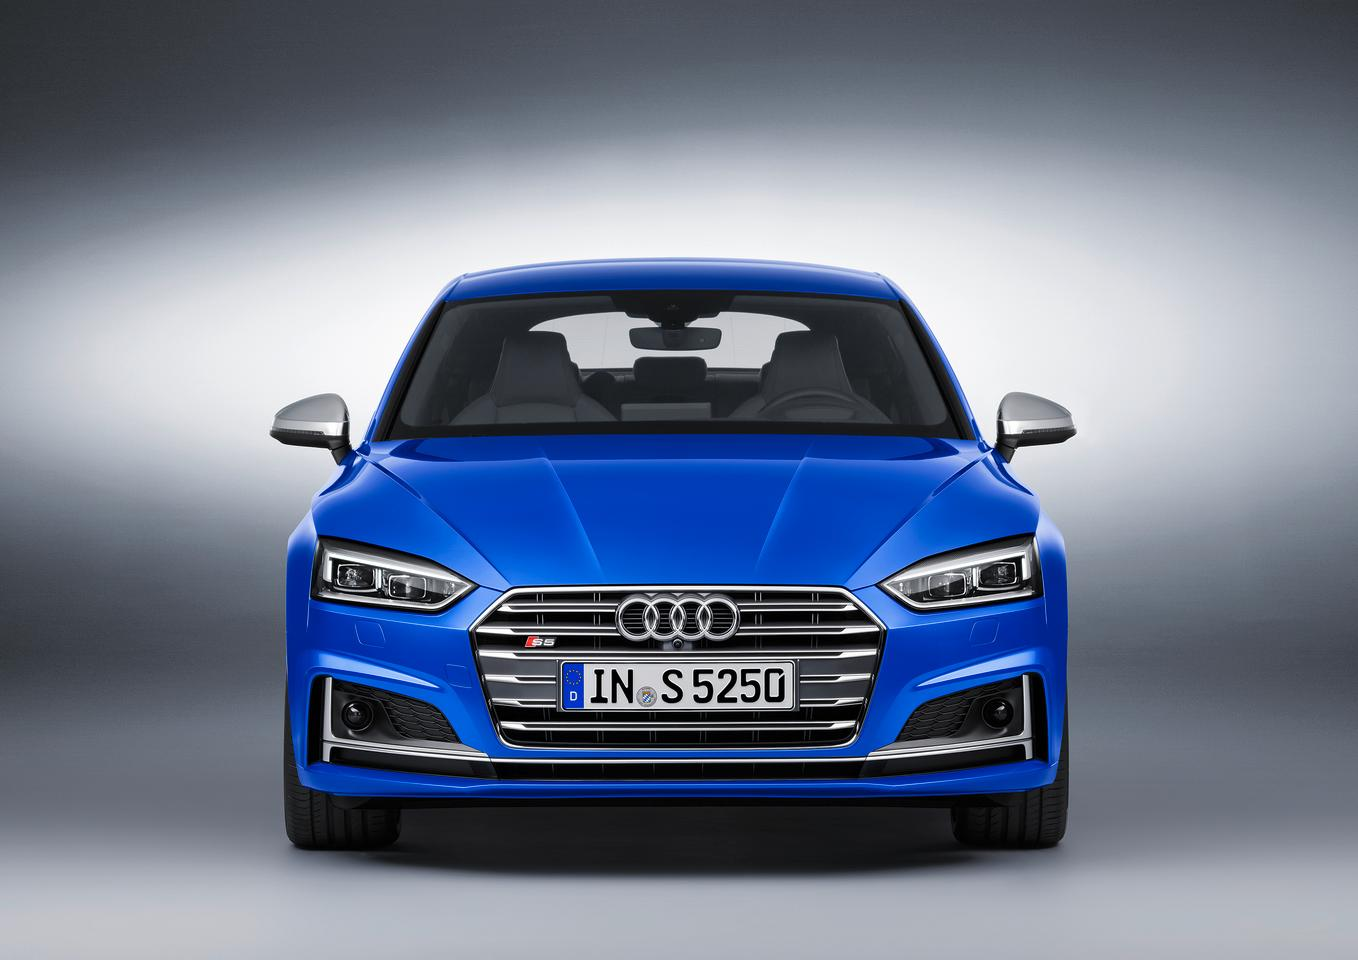 The new Audi S5 Sportback looks like a regular coupe from front on